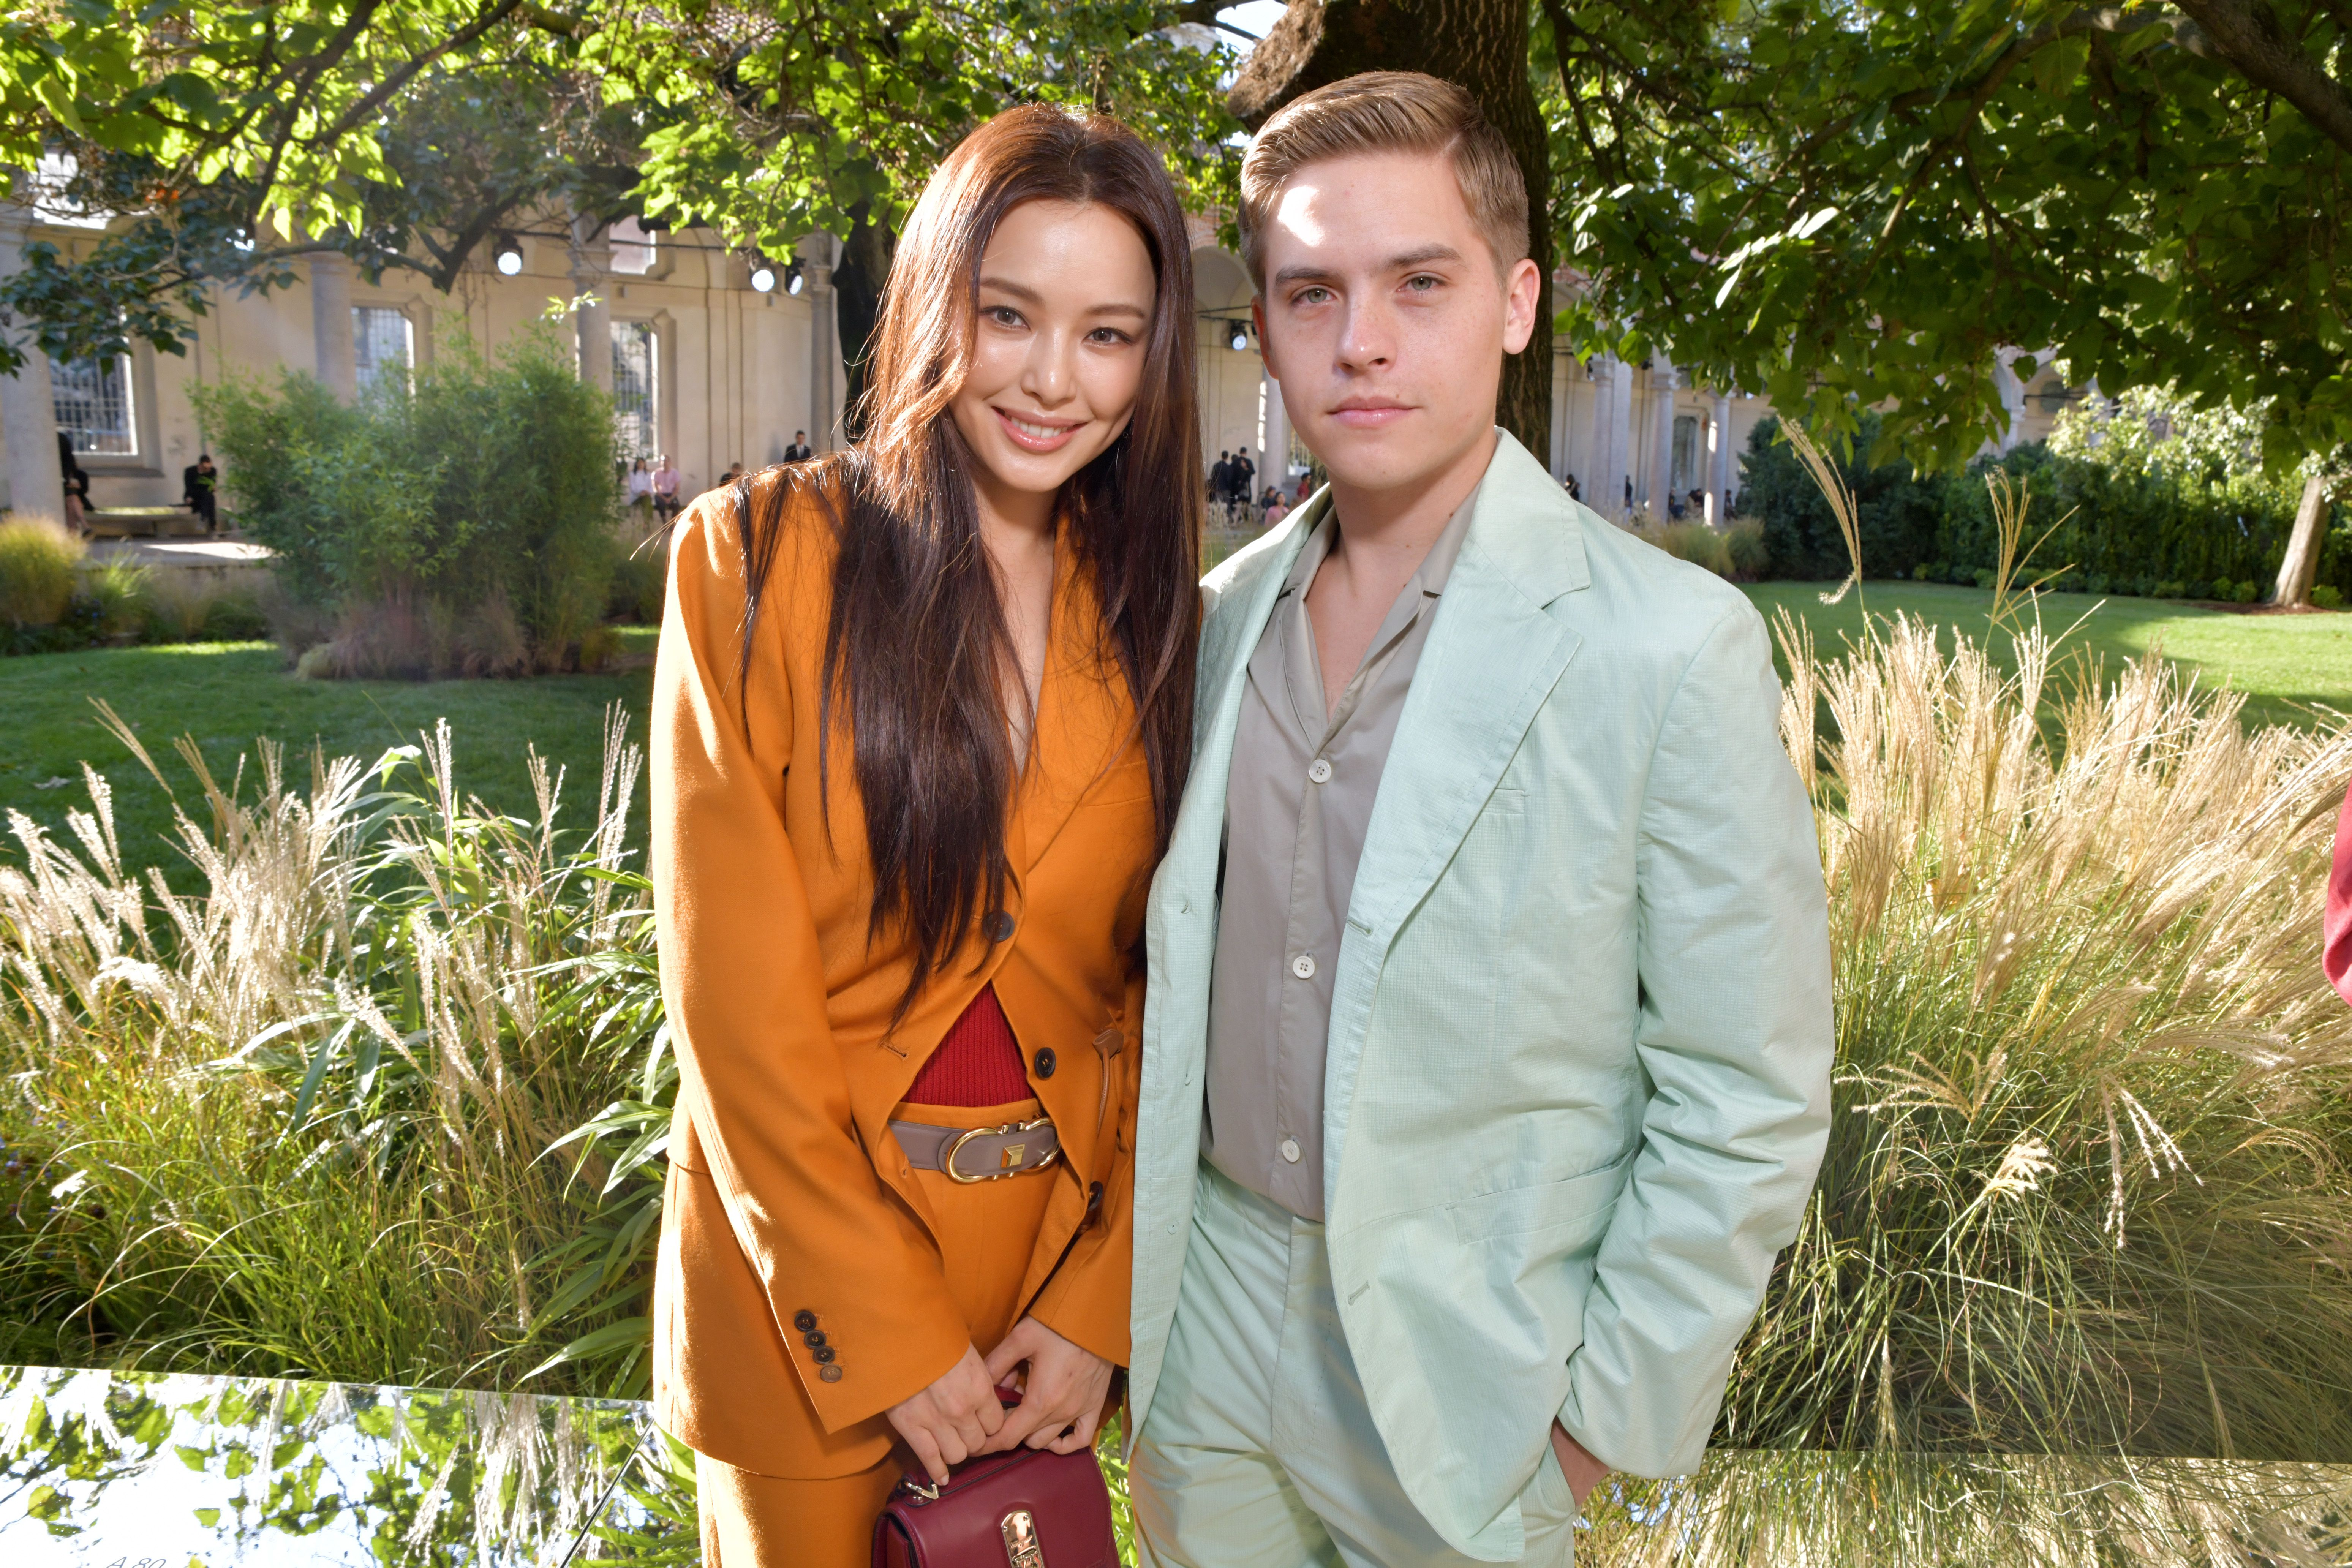 Lee Hanee and Dylan Sprouse in the front rowSalvatore Ferragamo show, Front Row, Spring Summer 2020, Milan Fashion Week, Italy - 21 Sep 2019